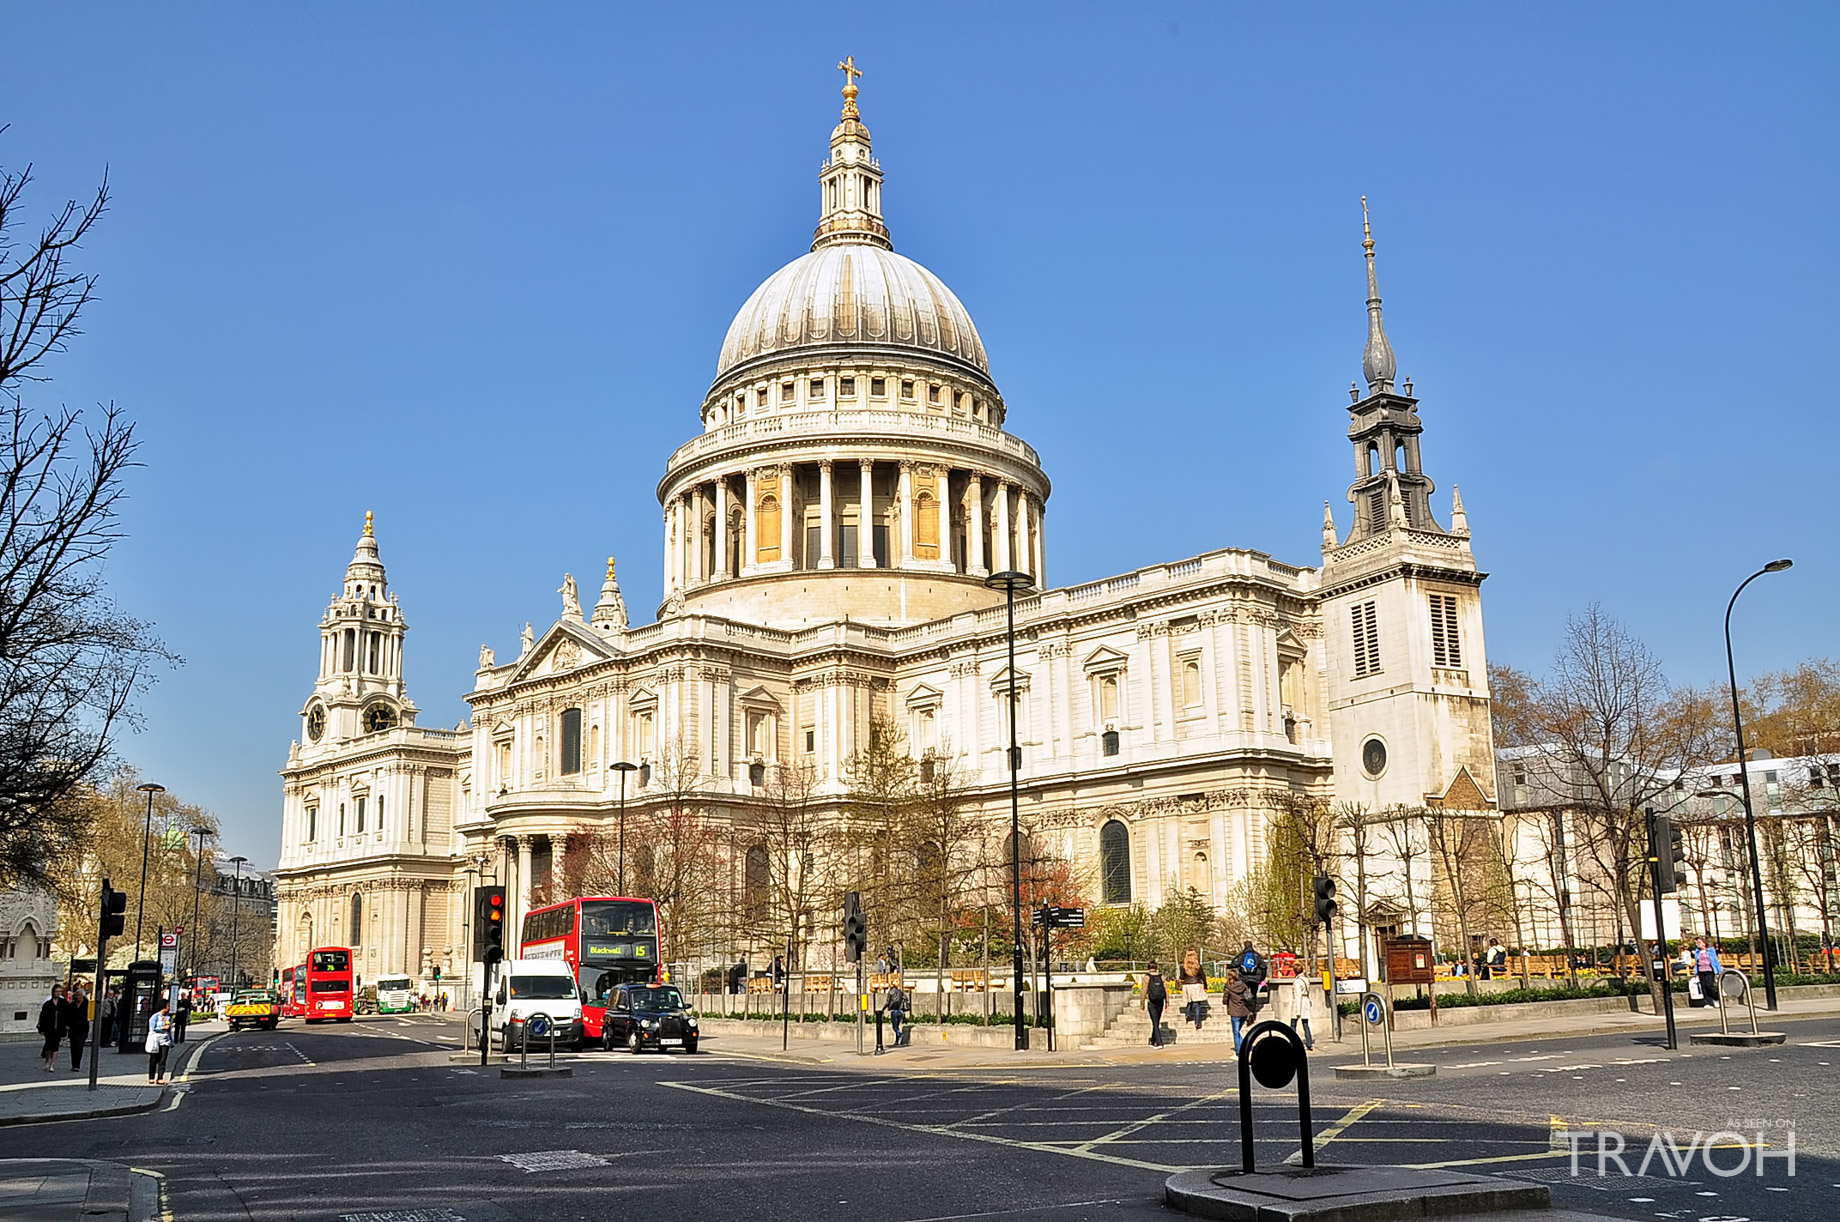 St Pauls Cathedral - St Pauls Churchyard, London, United Kingdom